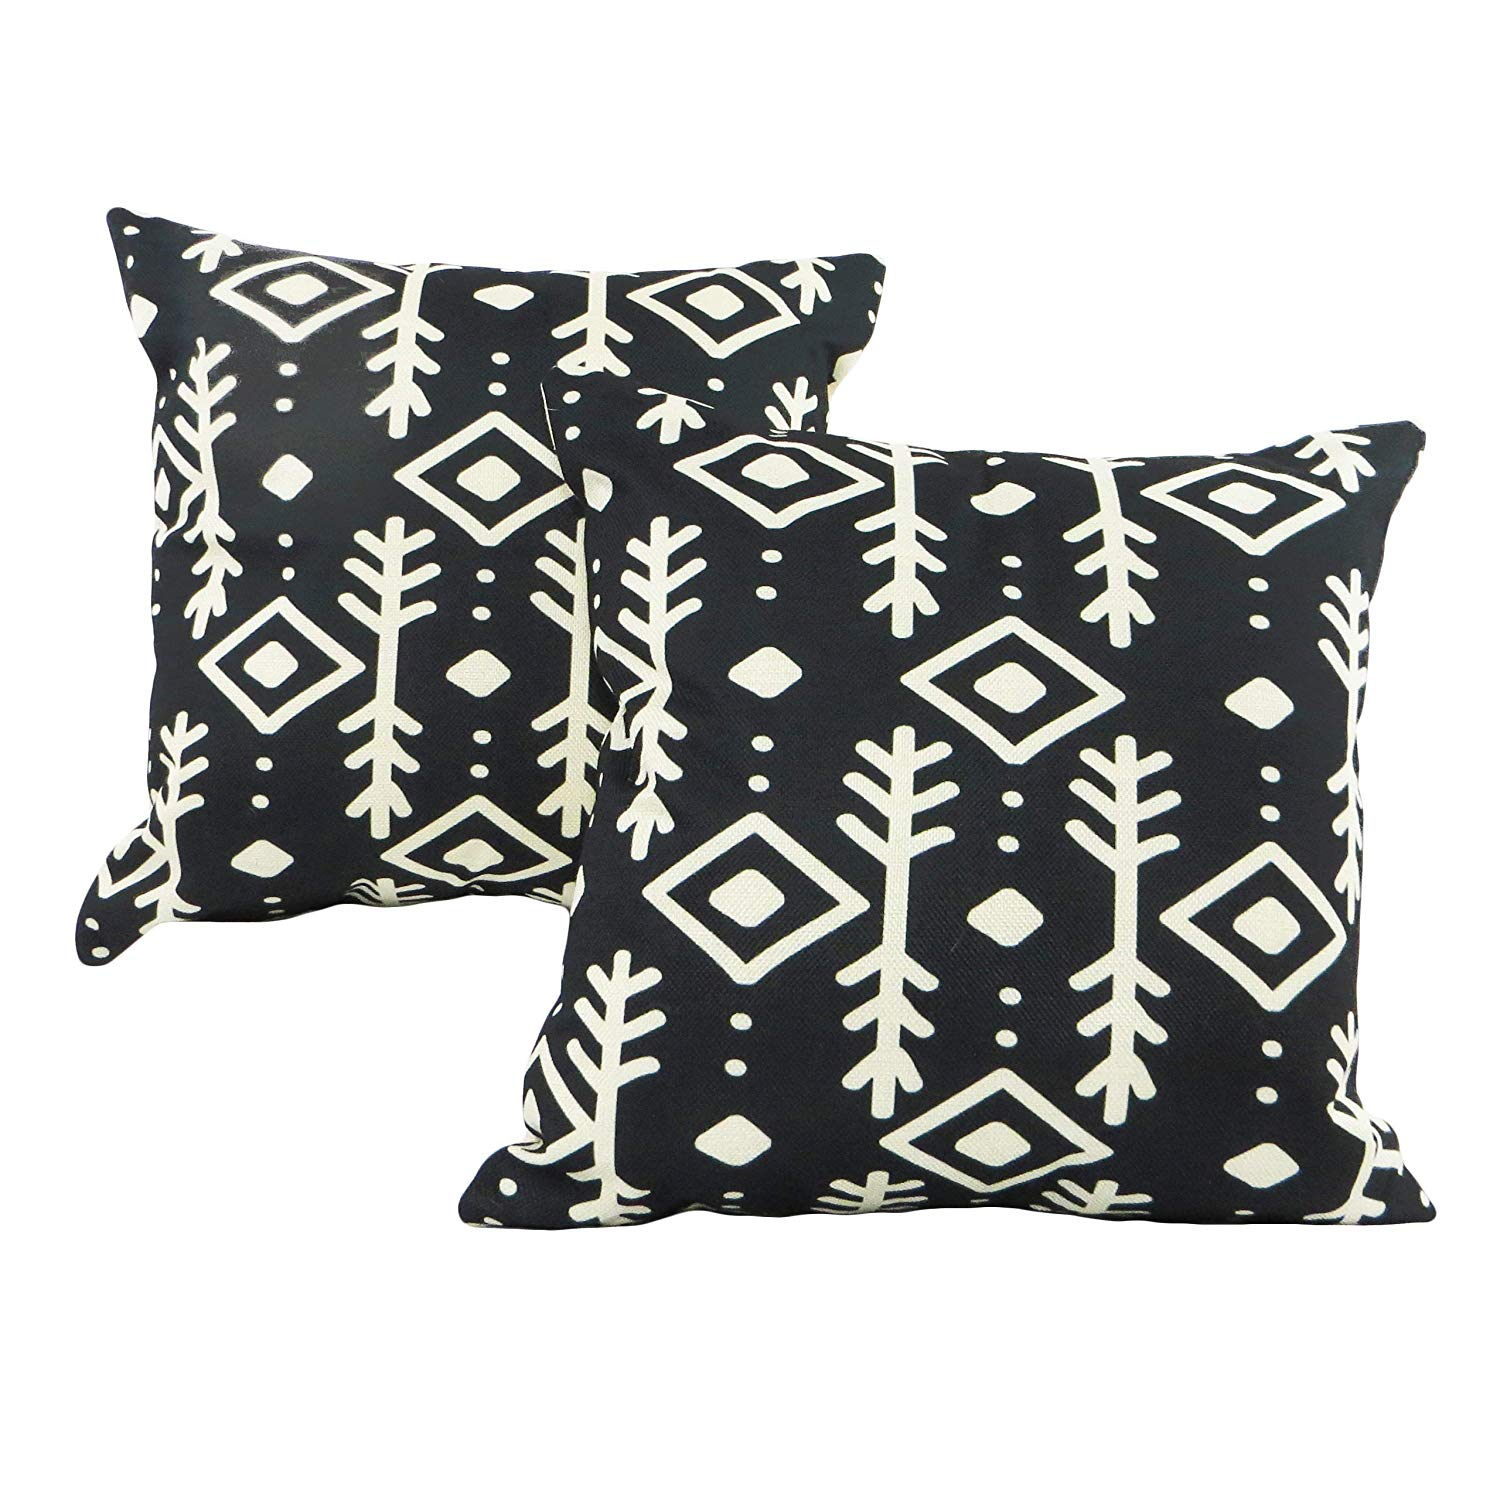 Target Ikat originals unavailable; similar alternative